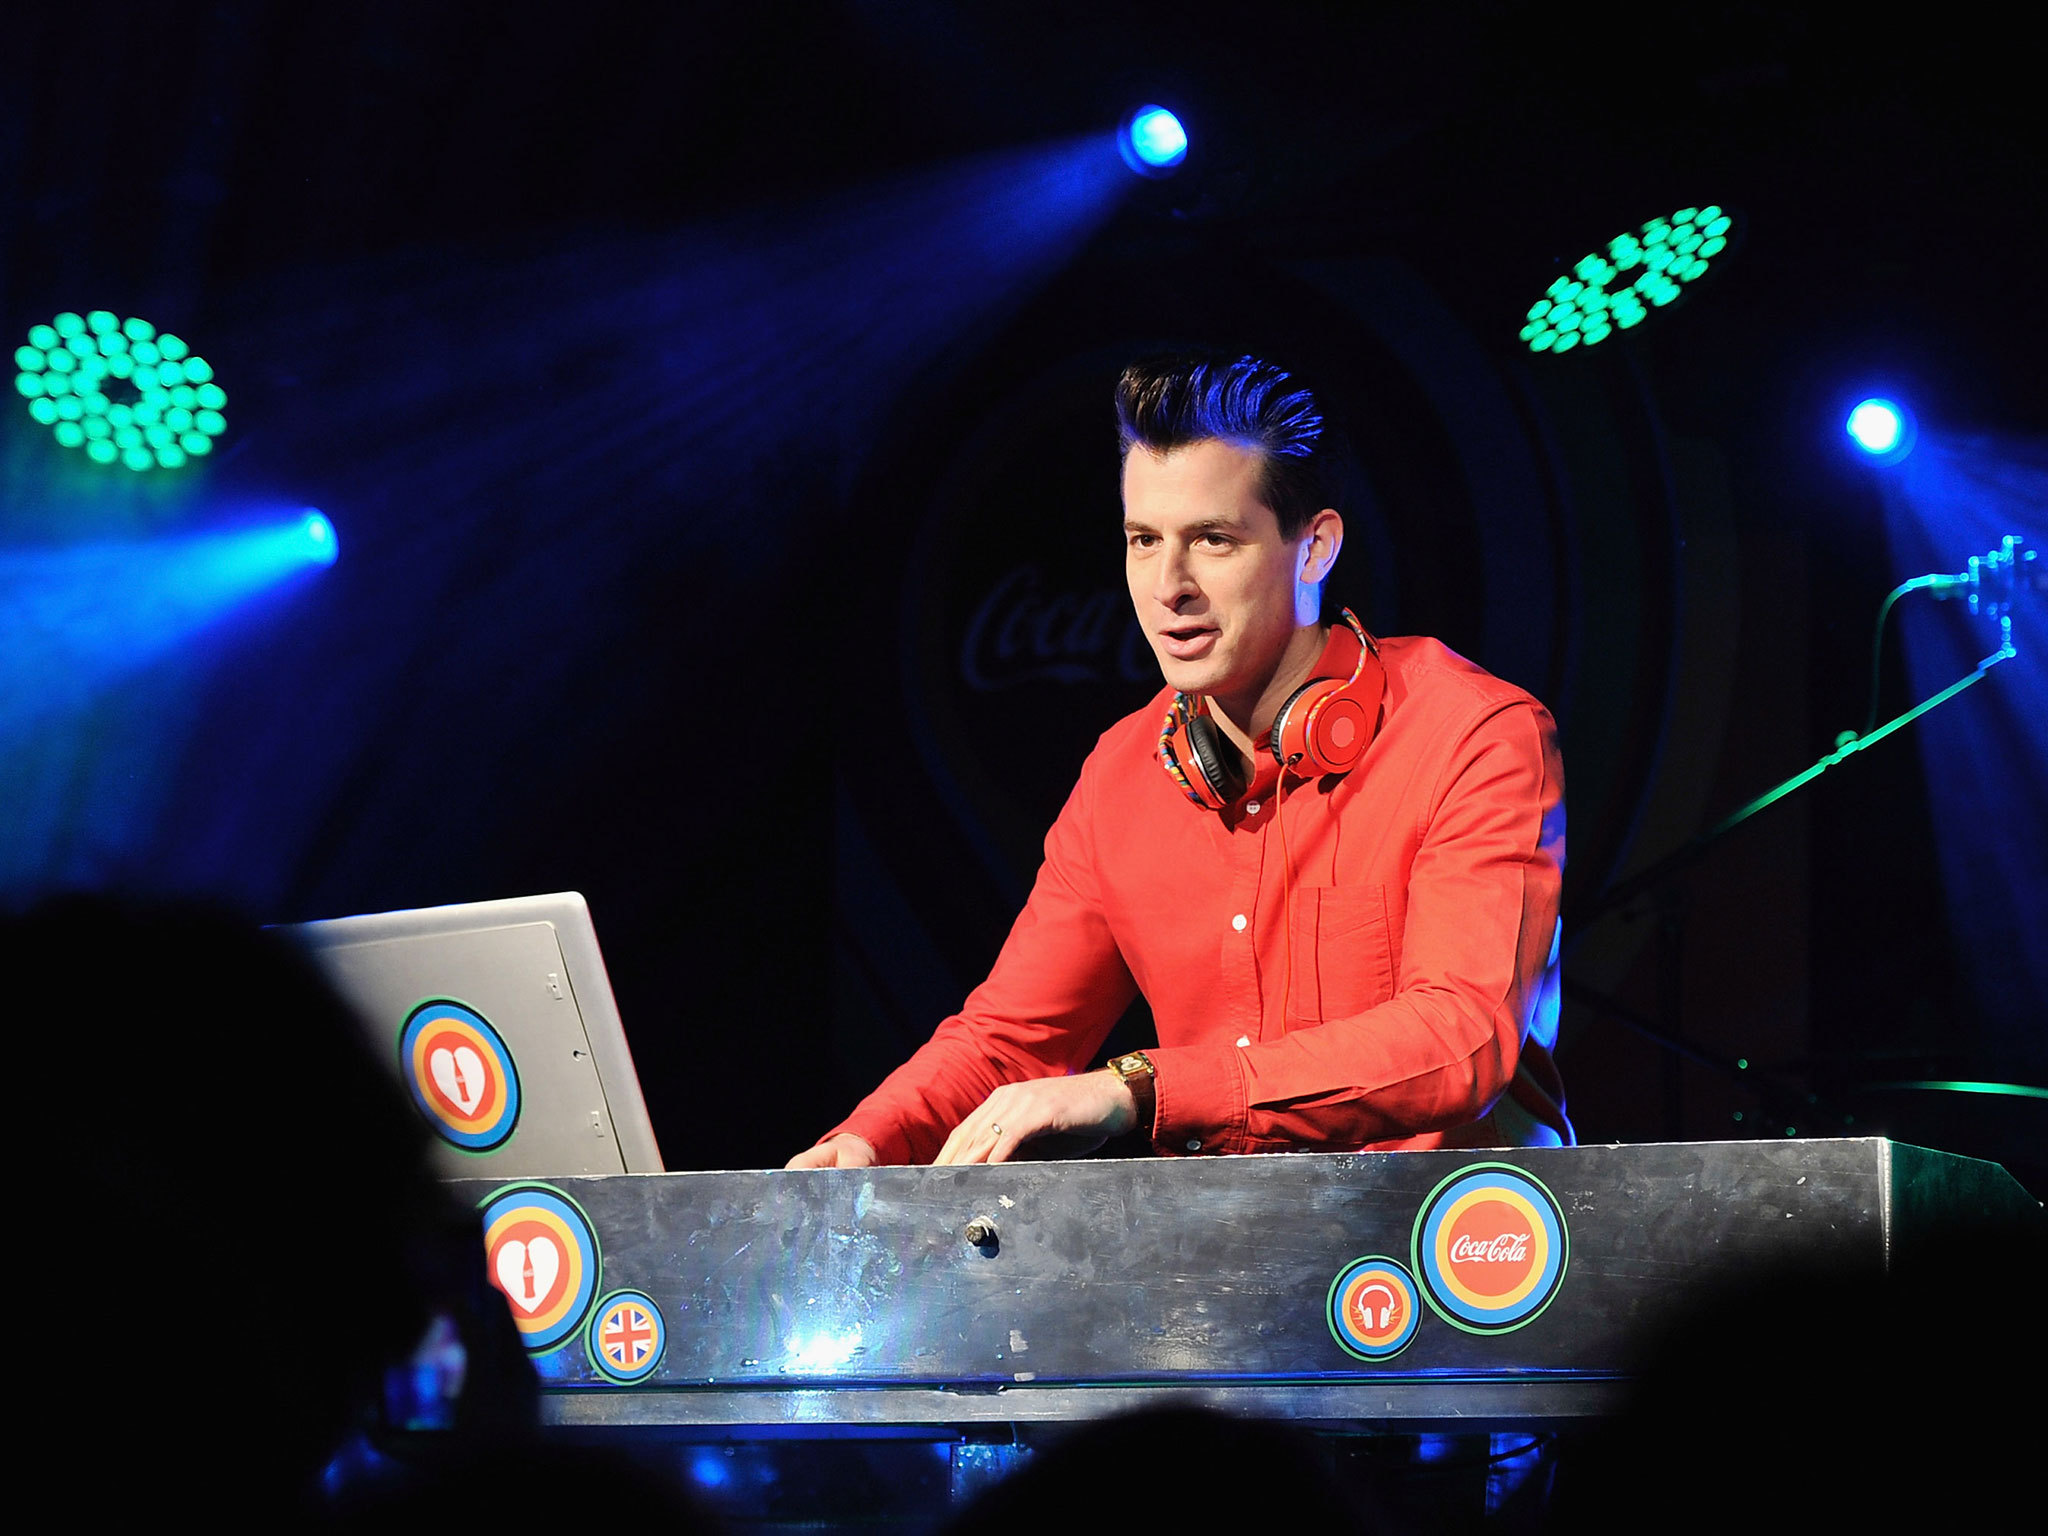 Mark Ronson Hd Background